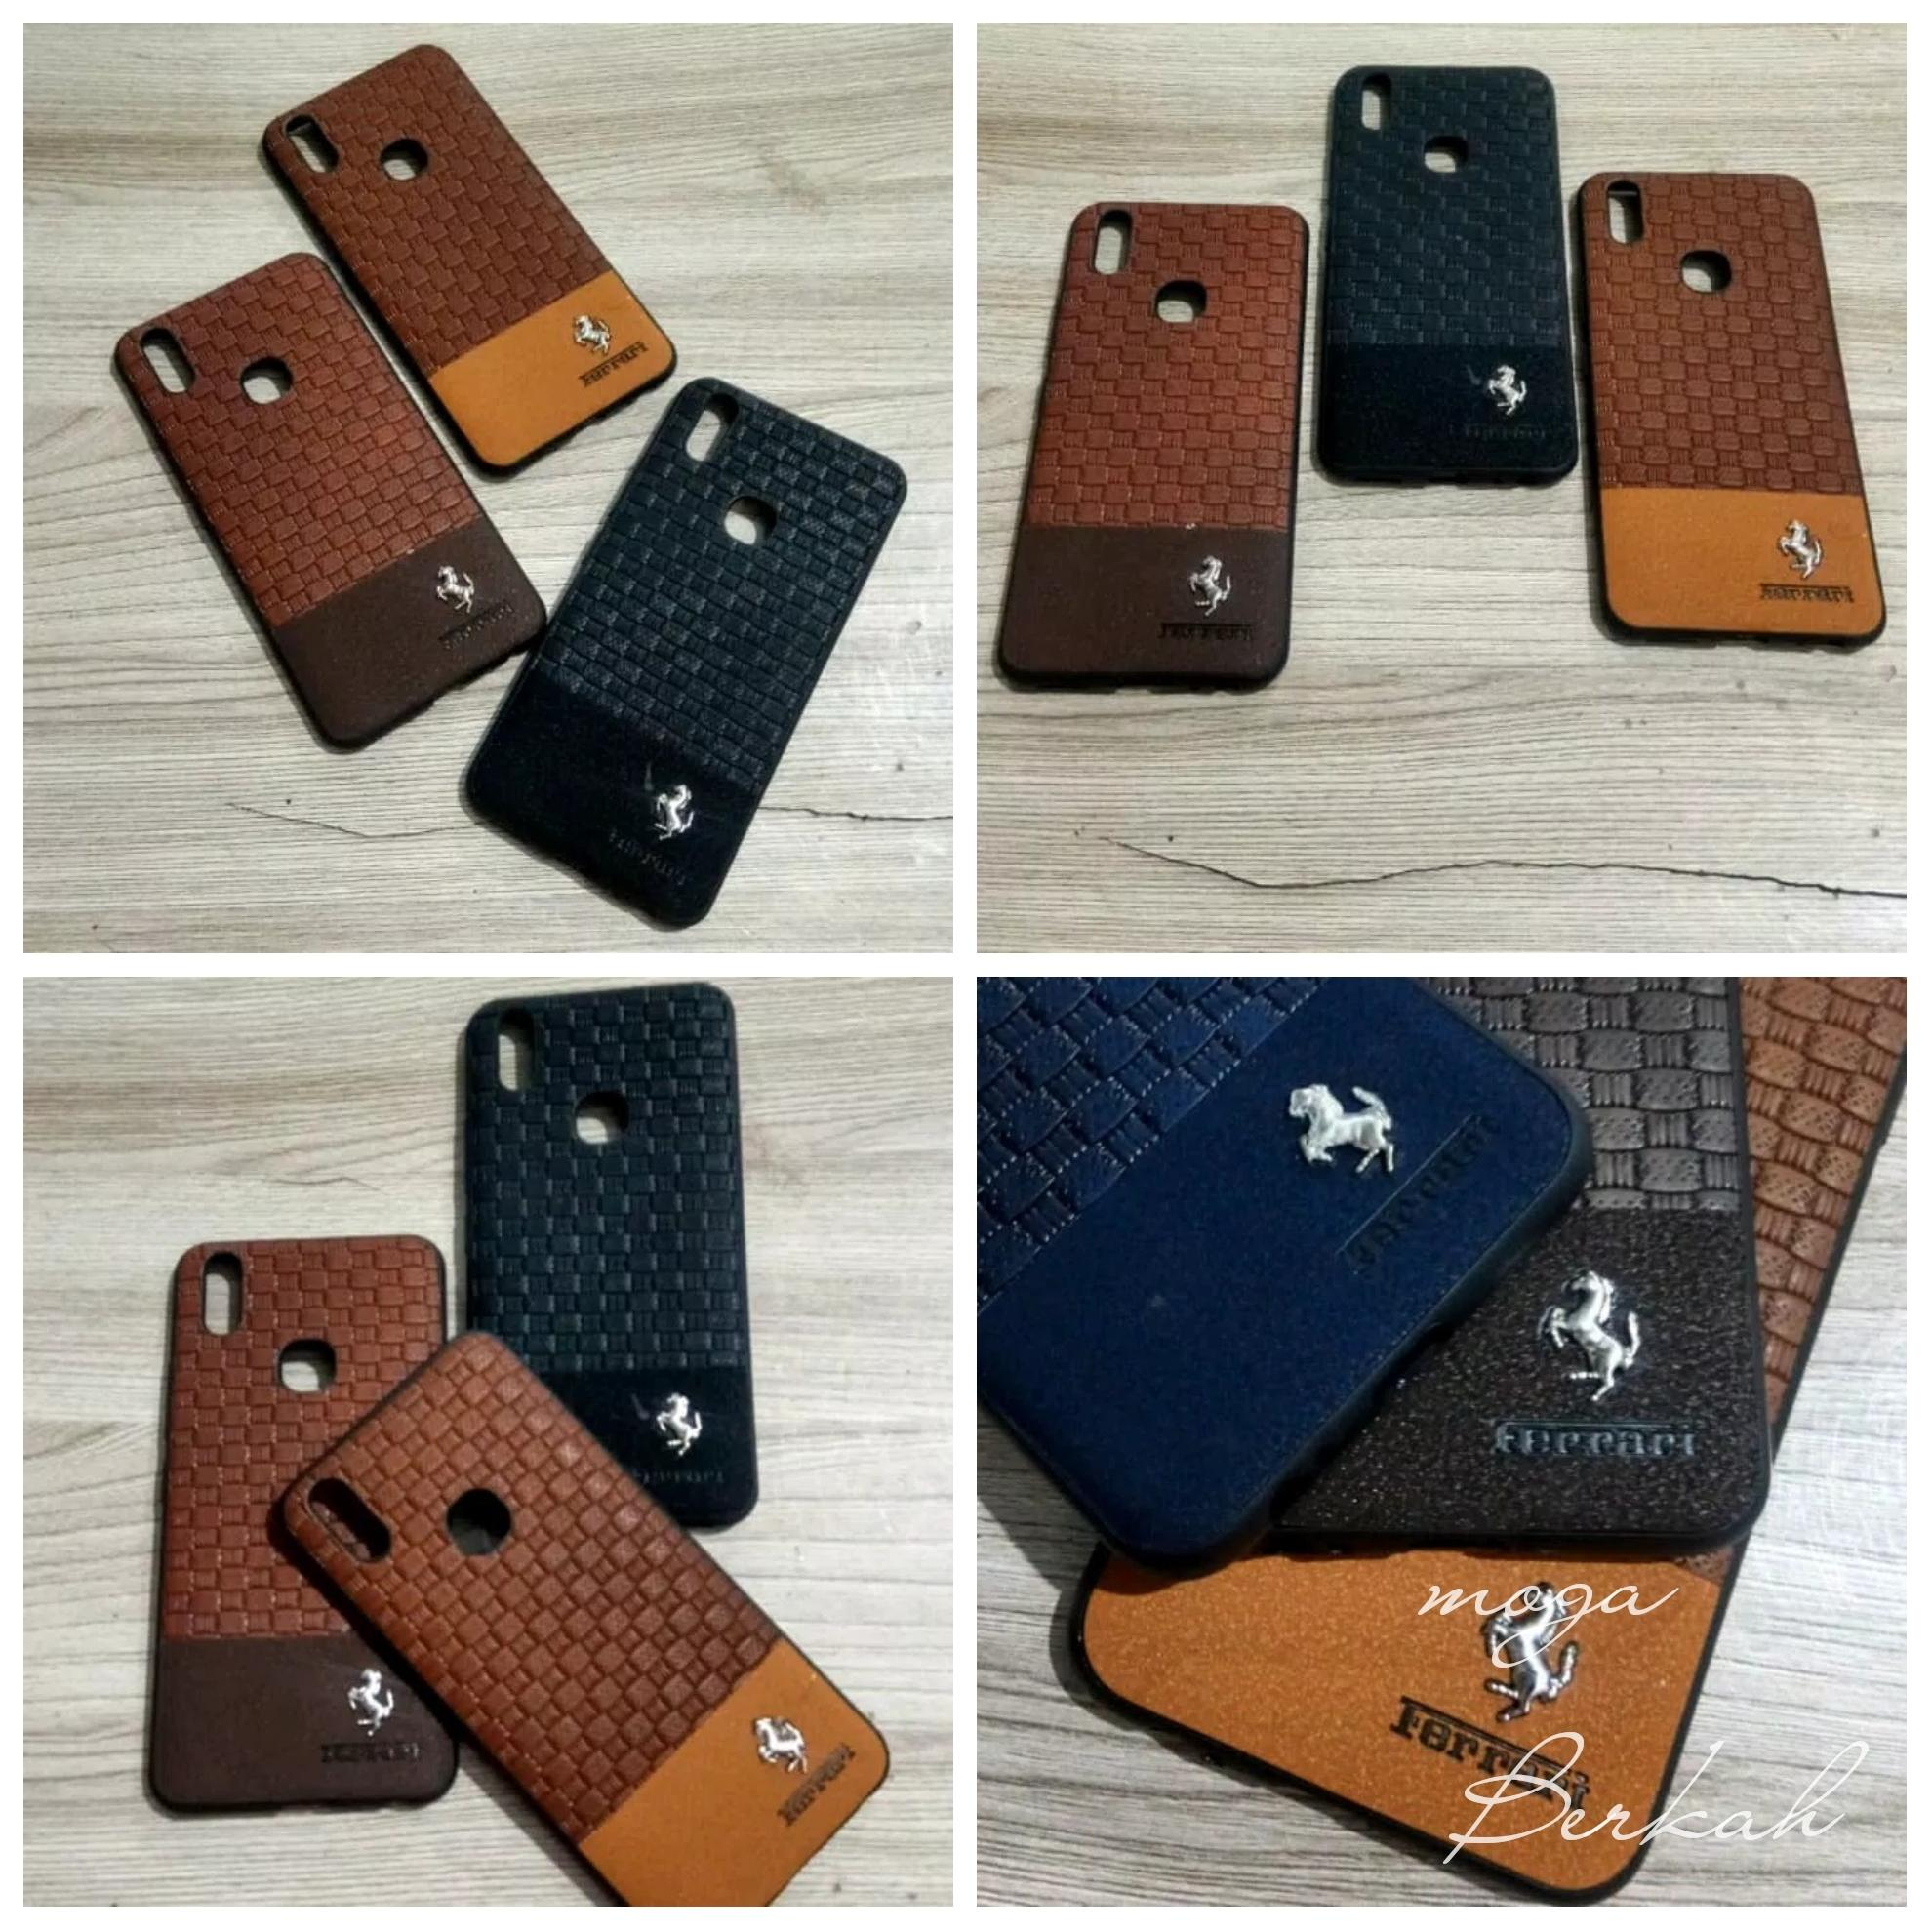 Case vivo V9 case leather logo ferari vivo v9 pro case kulit sintetis vivo v9 plus